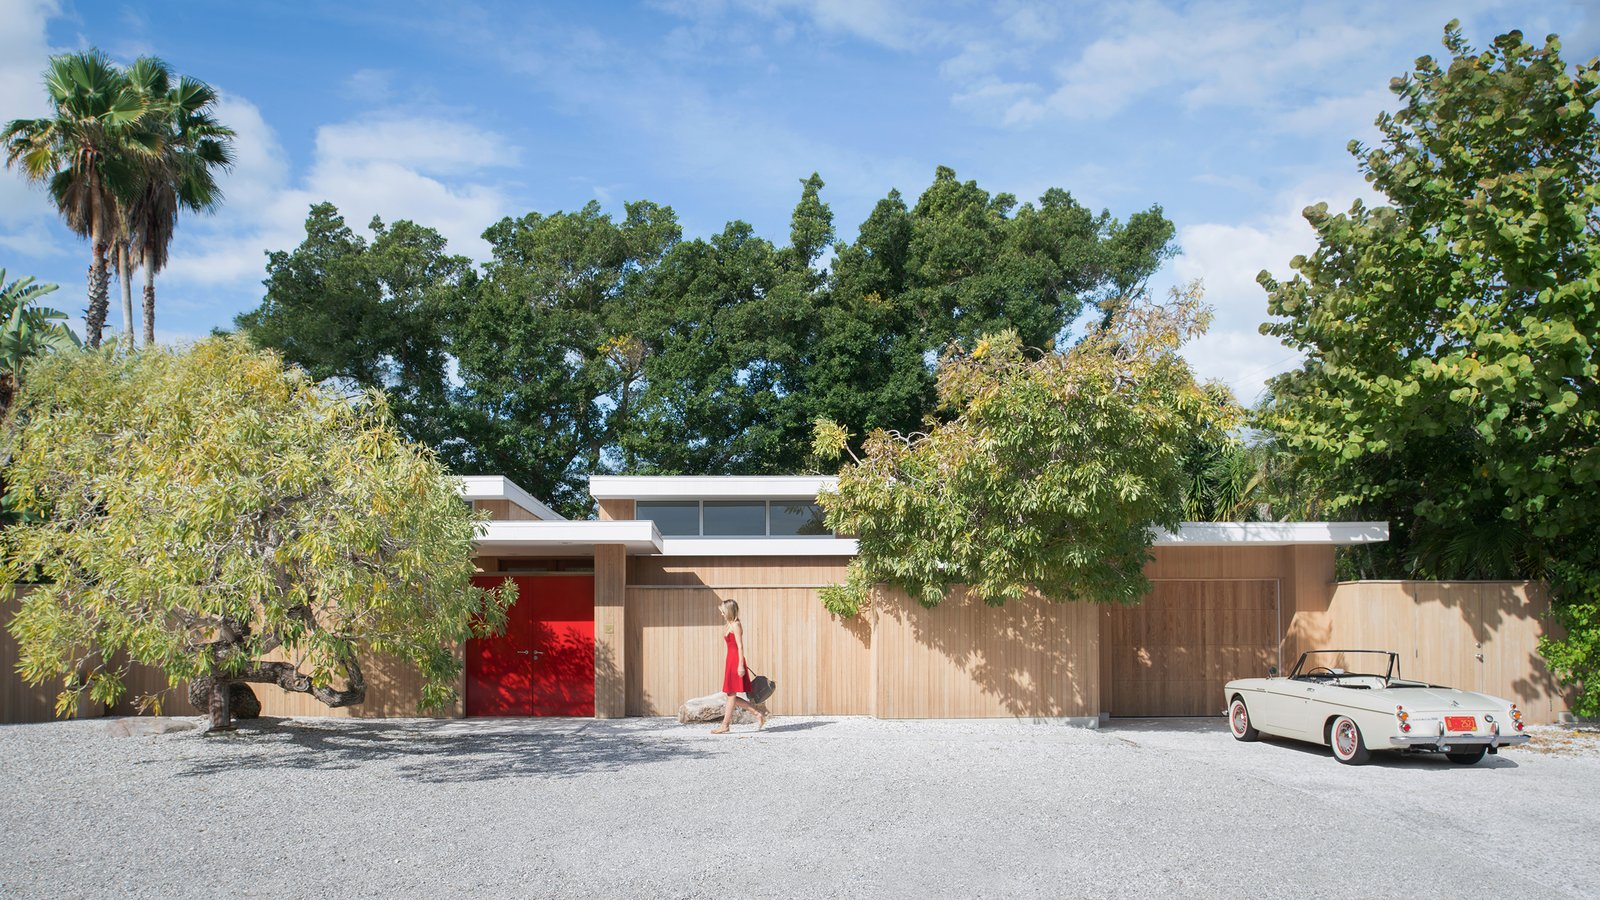 The Pavilion House's outer wall encircles a snaking courtyard that connects many of the home's interior spaces. After a step inside the lipstick red door, guests are greeted with an entrance into the home's exterior or to private patio on the left. Within that outer wall, both indoor and outdoor spaces appear to be one in the same.  The Pavilion House by Seamus Payne